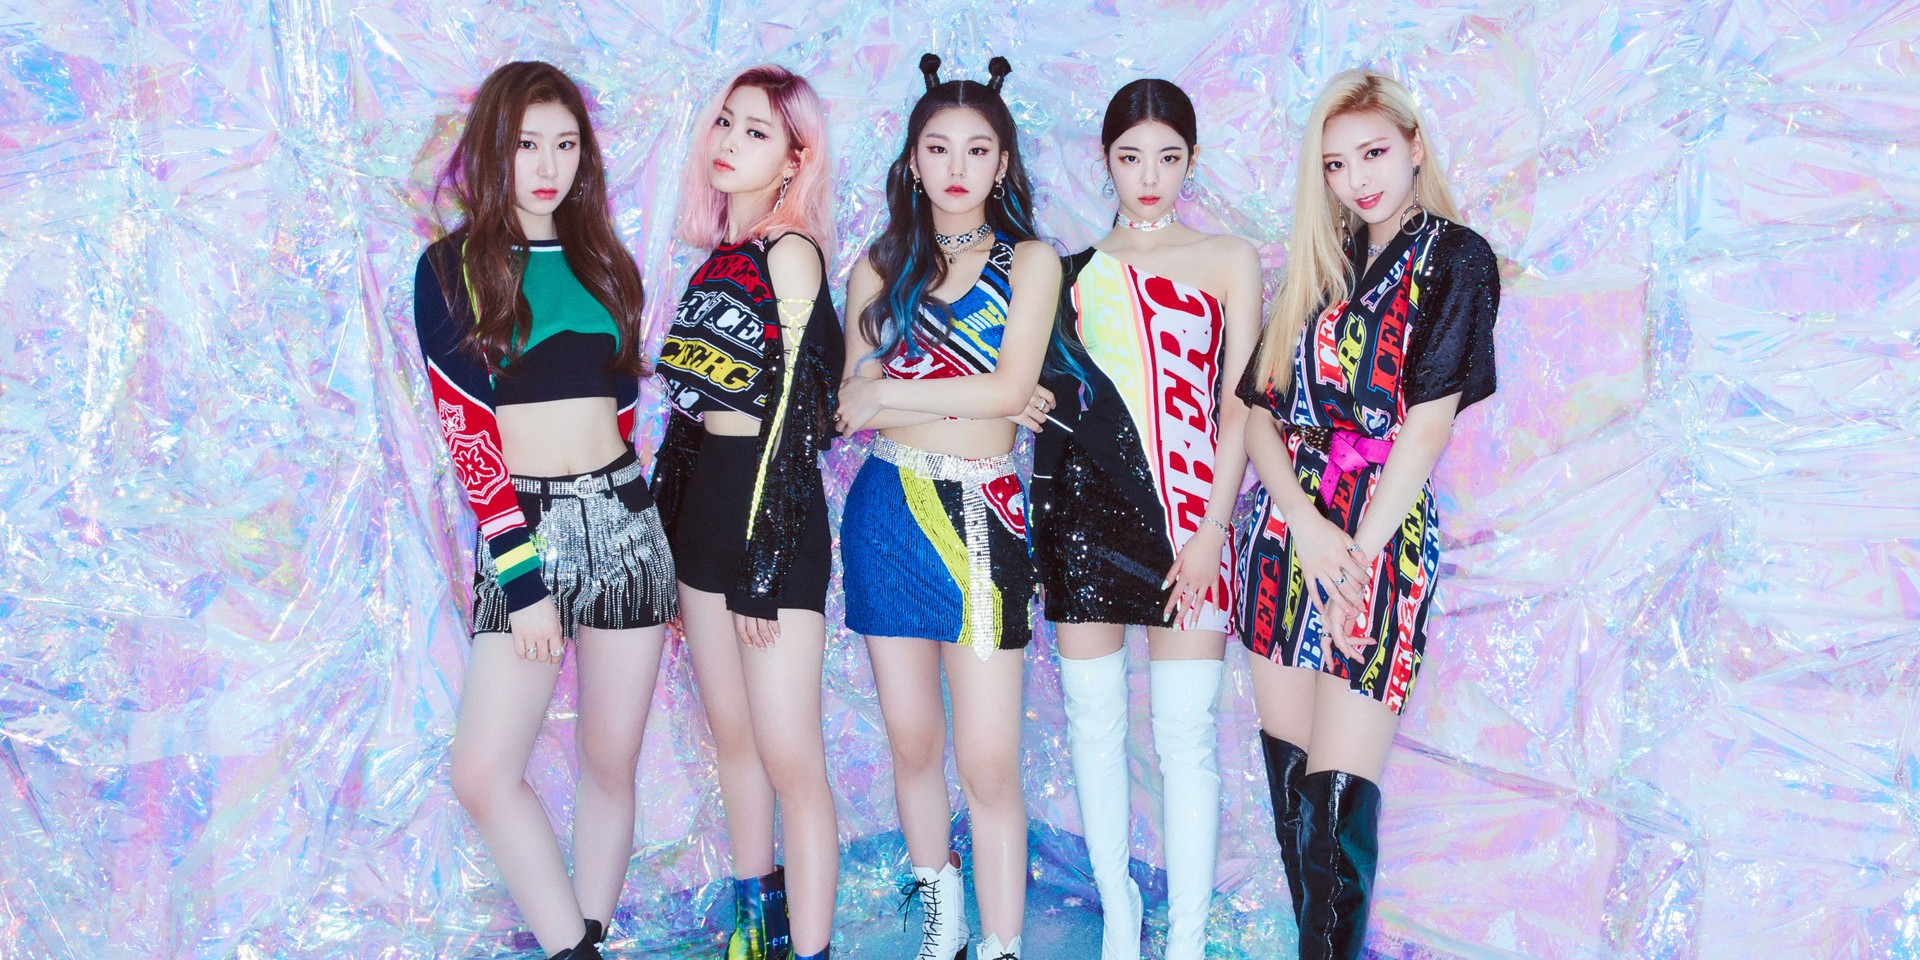 ITZY will arrive in Singapore this December for its debut showcase